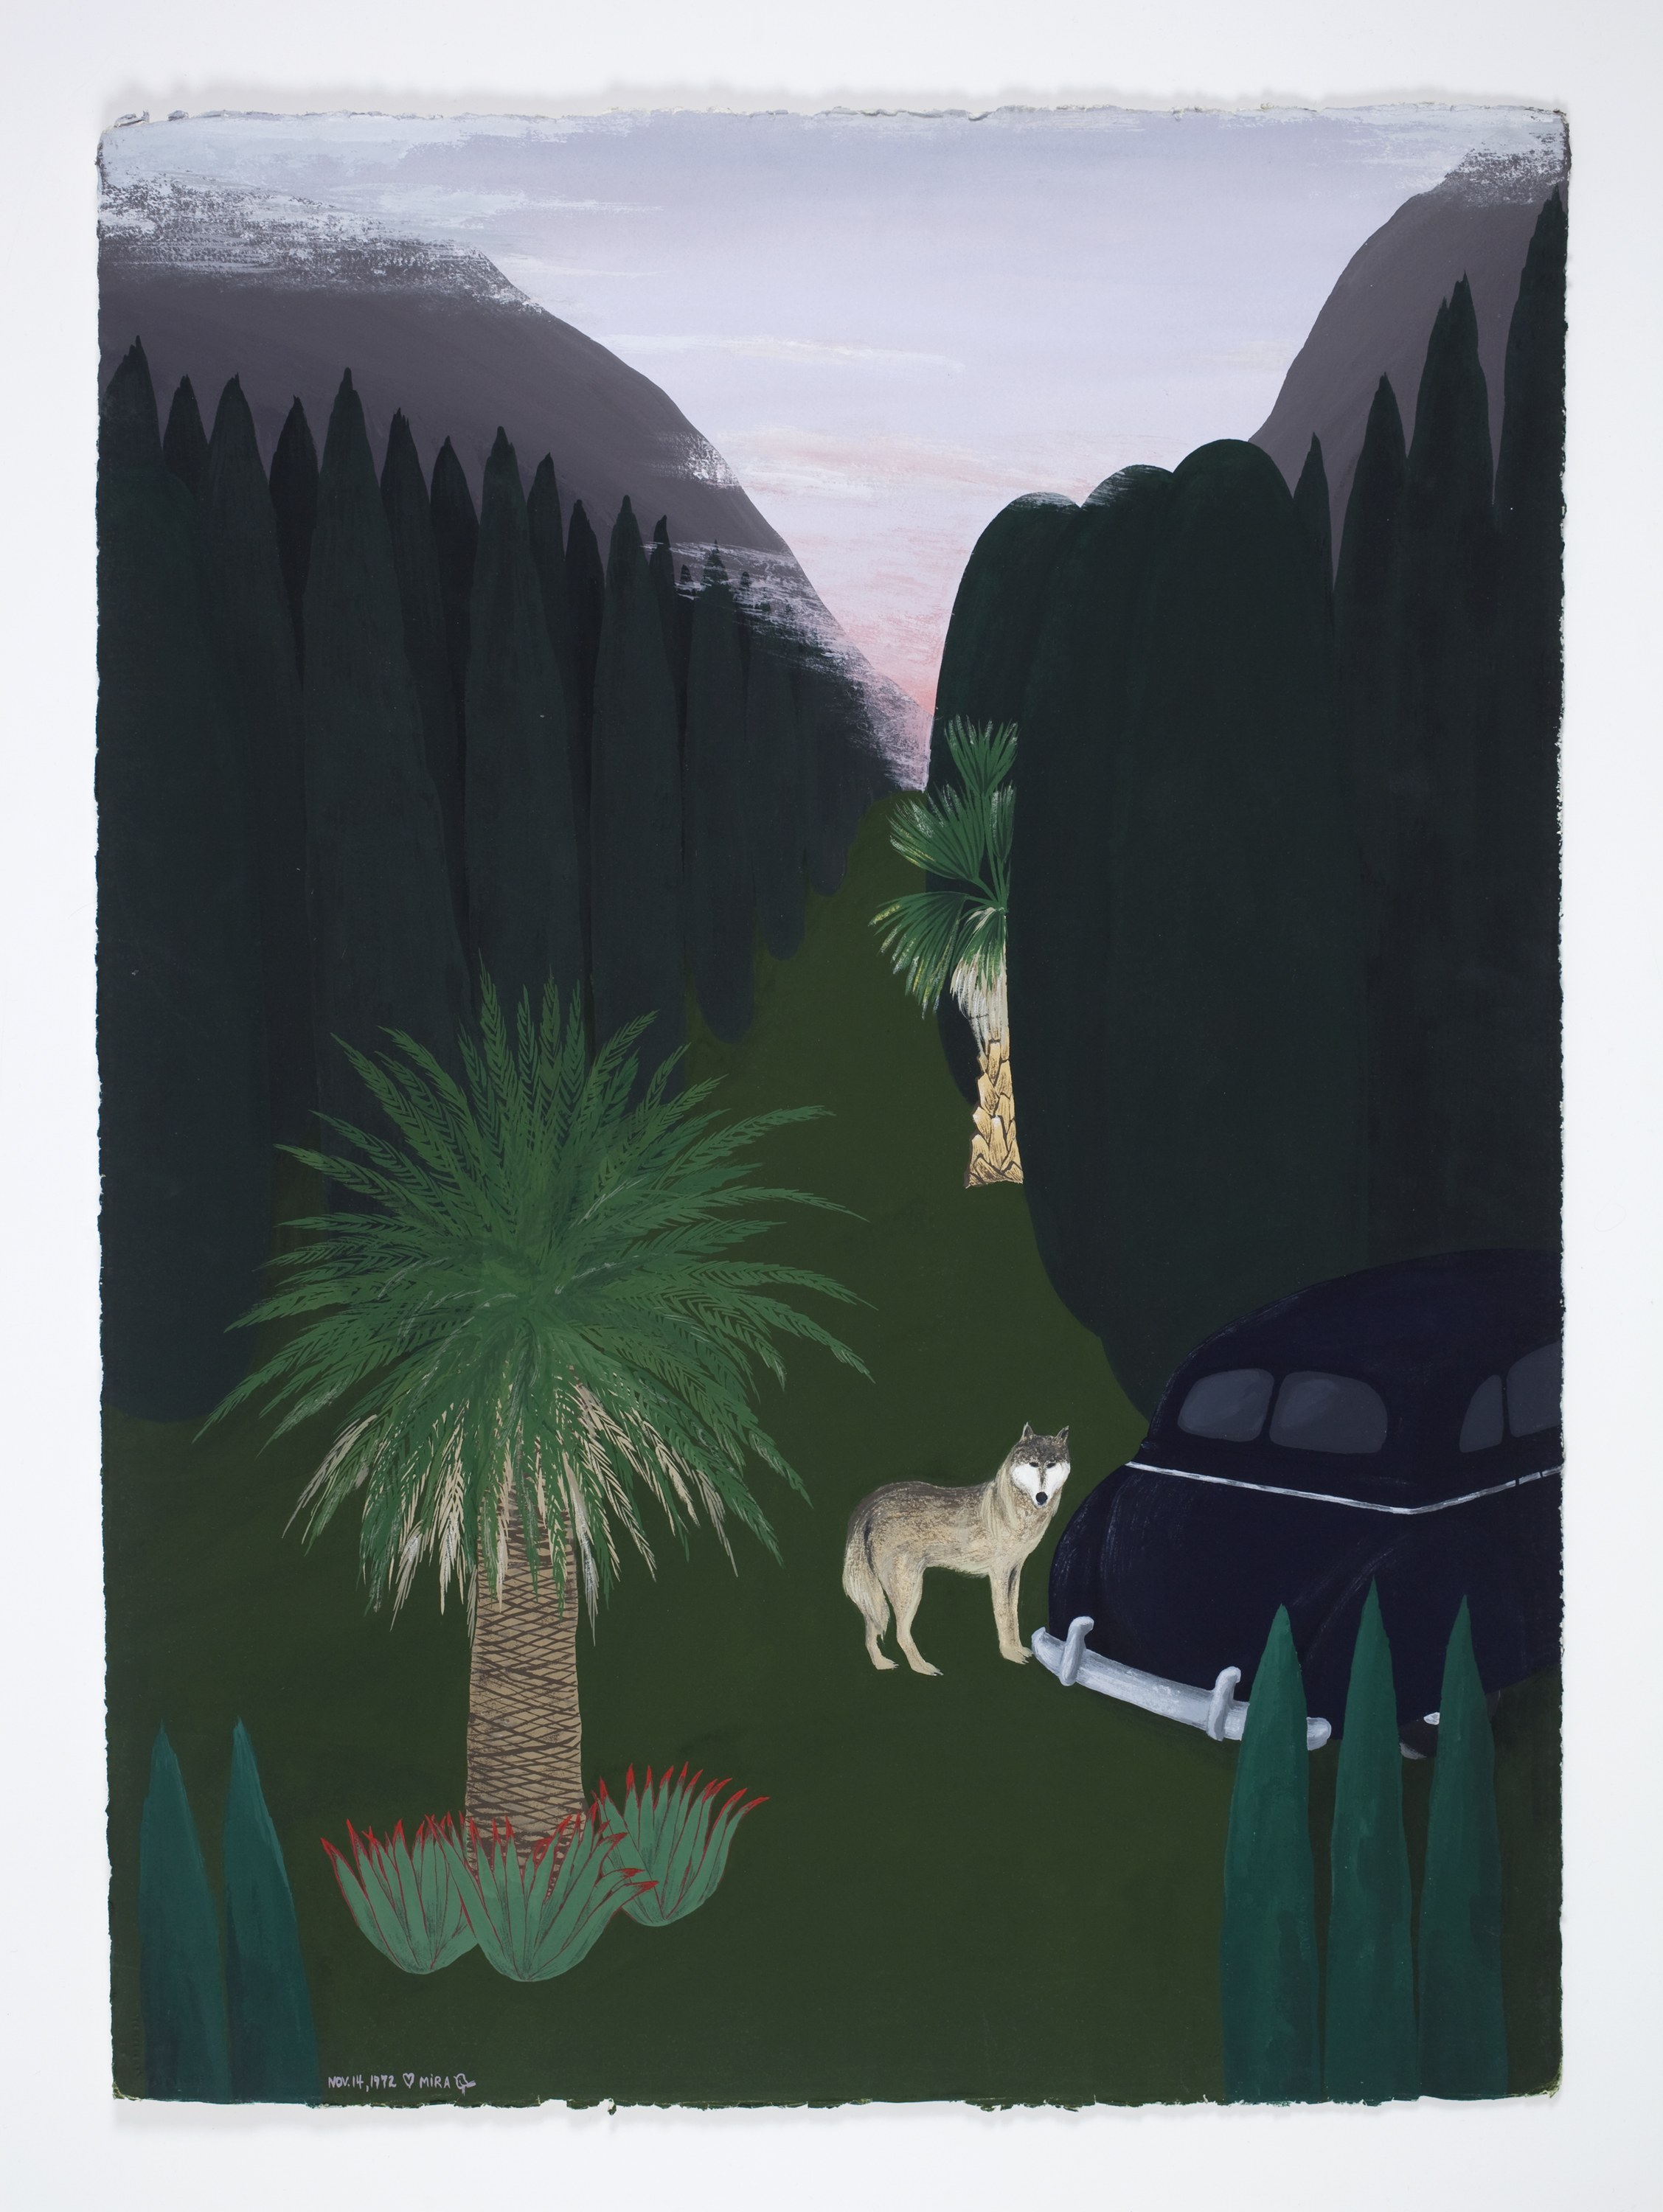 Mira Schor   Car Triptych (Part III) , November 14, 1972  Gouache on Arches paper  30 x 22 inches